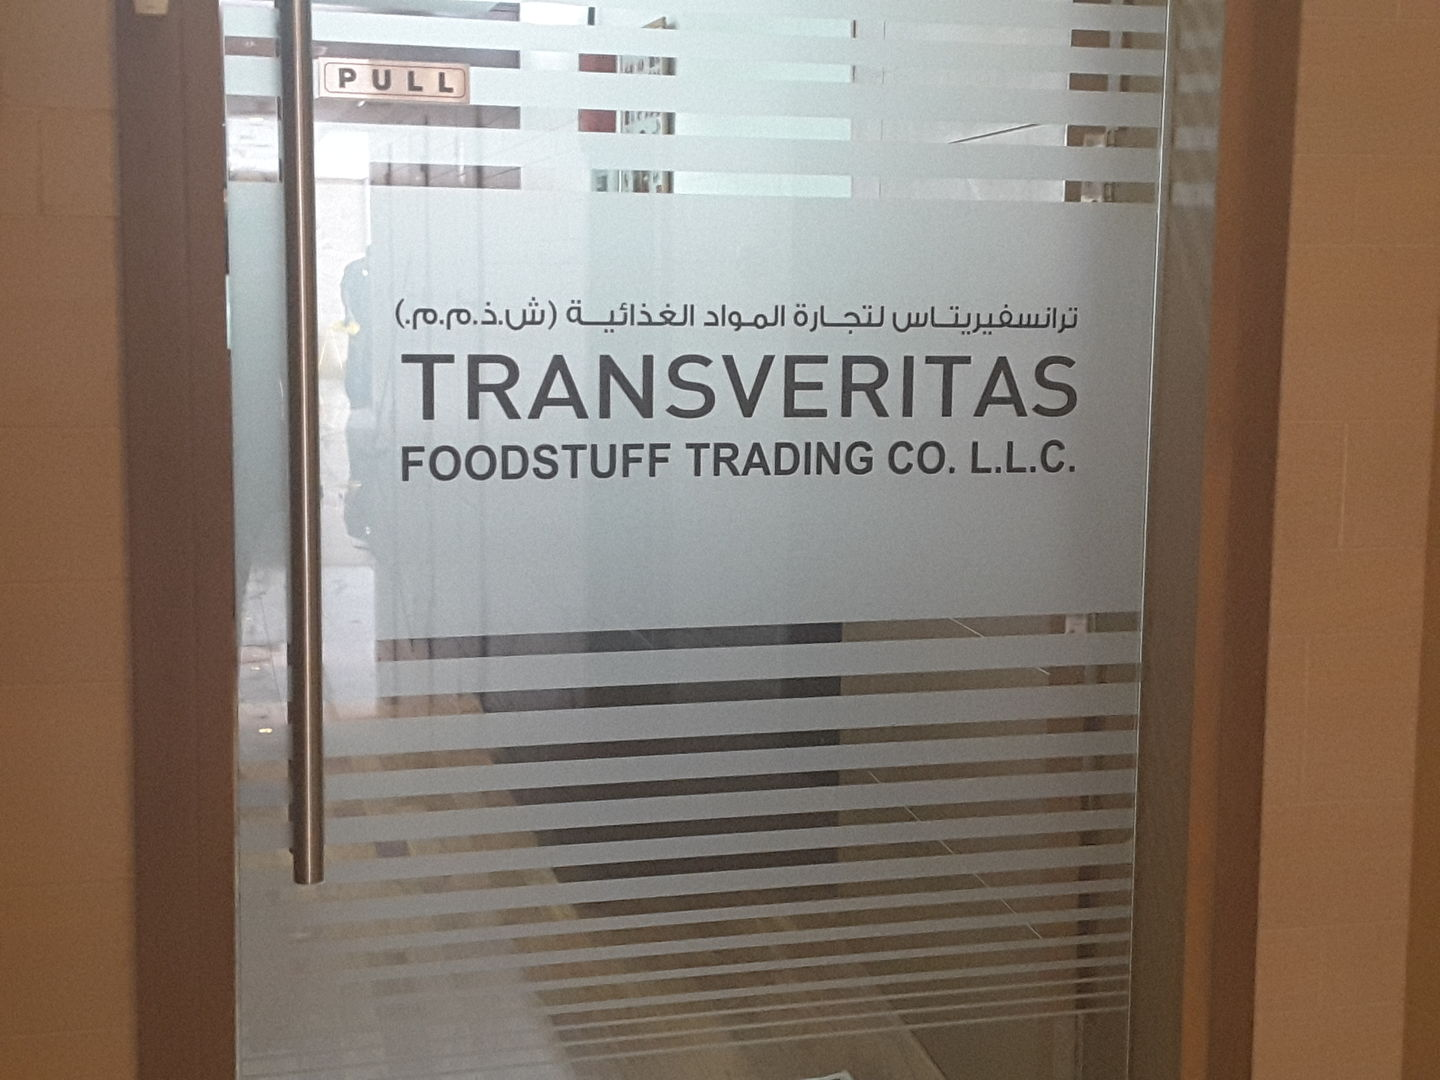 Transveritas Foodstuff Trading Co, (Food Stuff Trading) in Business